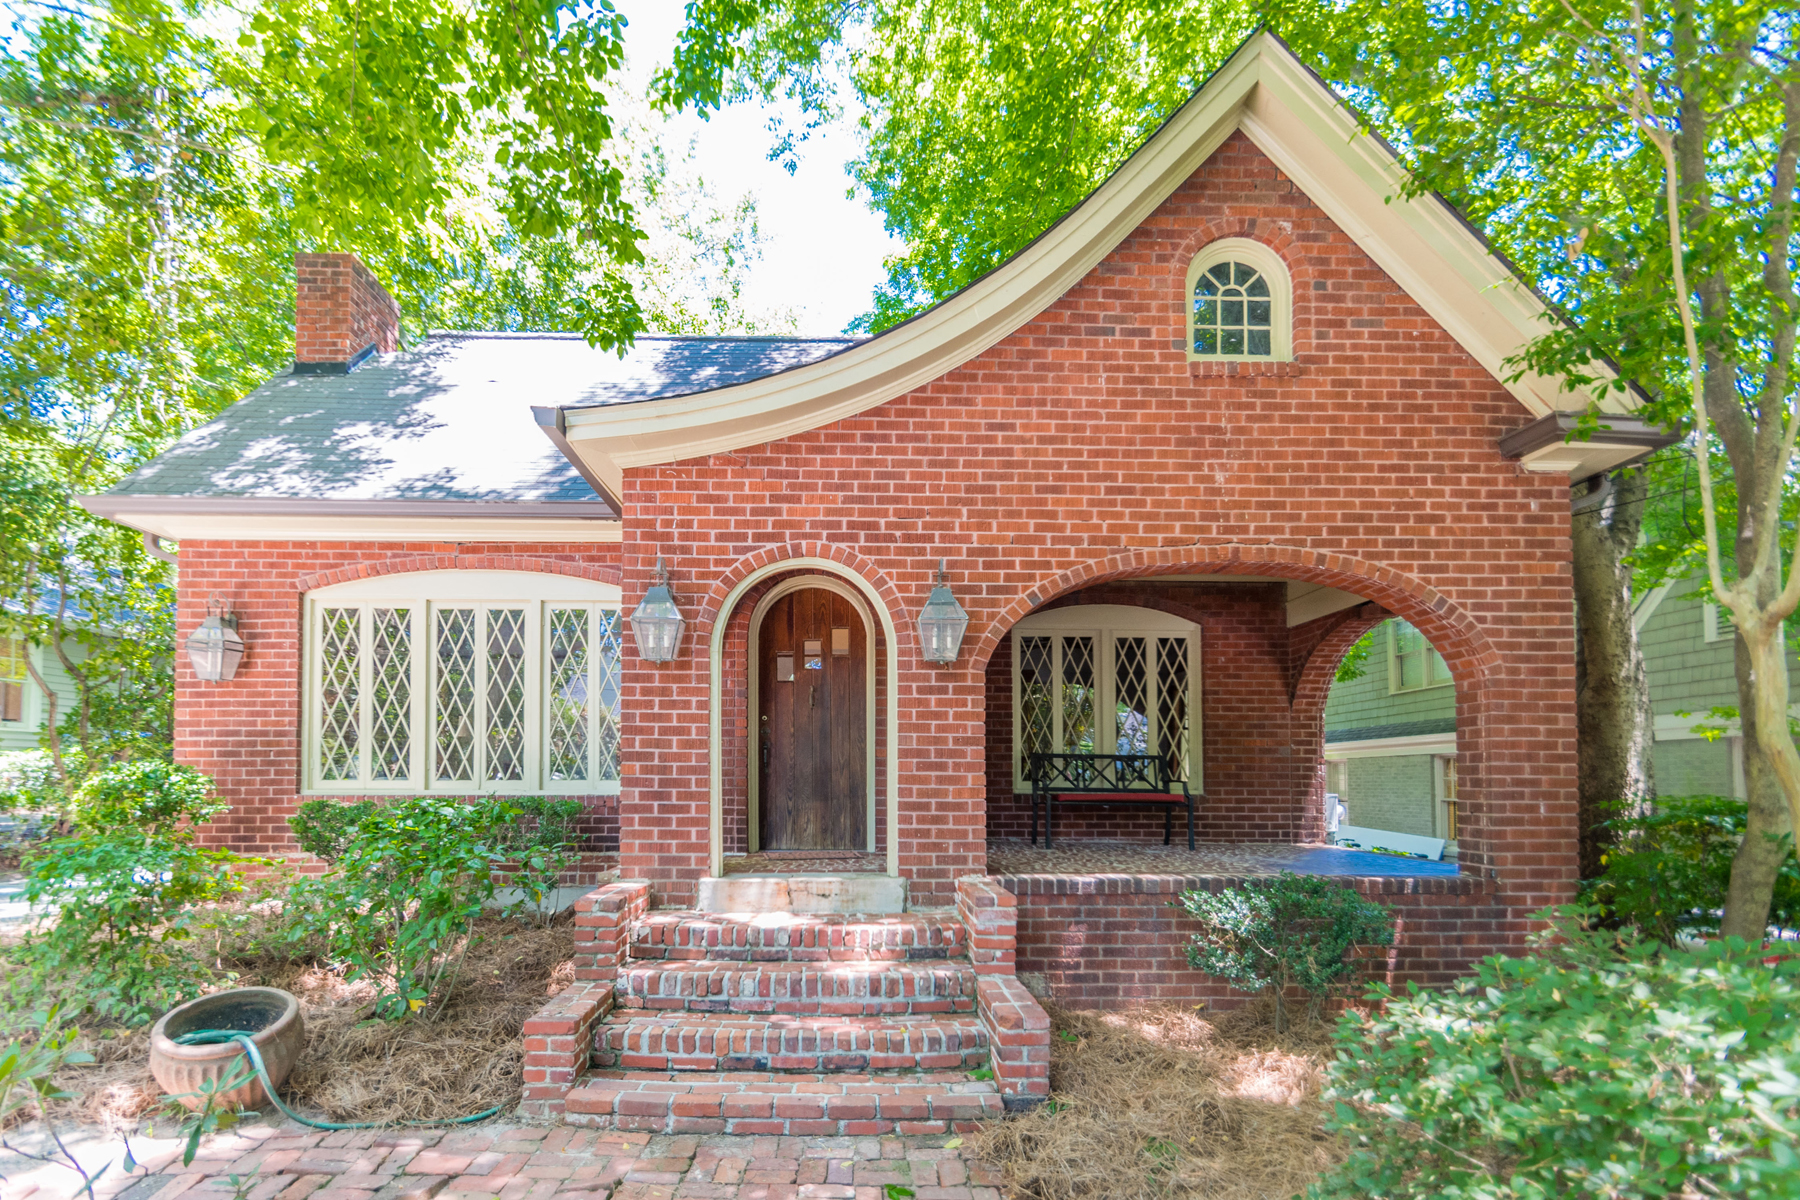 Single Family Home for Sale at Storybook Home In Desirable Peachtree Hills 90 Mobile Avenue NE Peachtree Hills, Atlanta, Georgia, 30305 United States